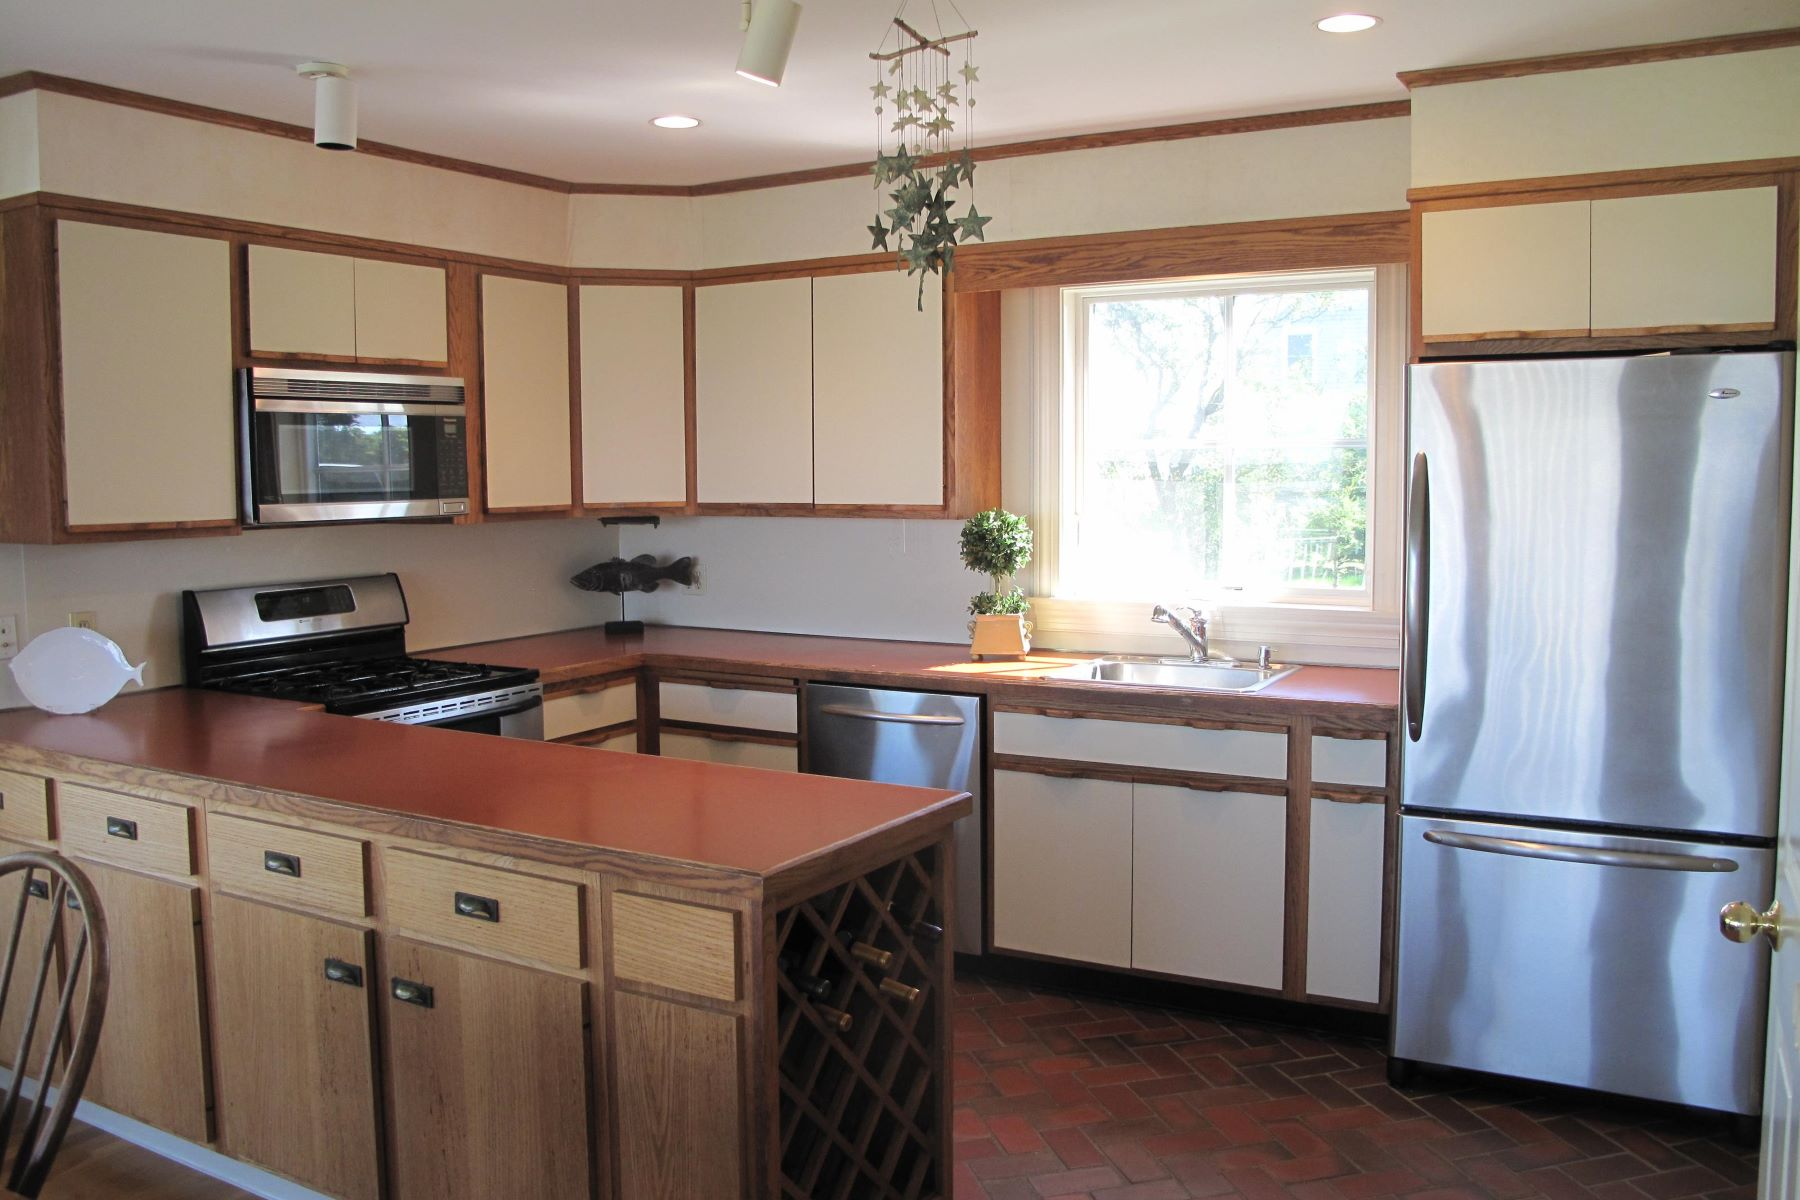 Additional photo for property listing at 1201 Trim's Ridge 1201 West Side Road Block Island, Rhode Island 02807 United States